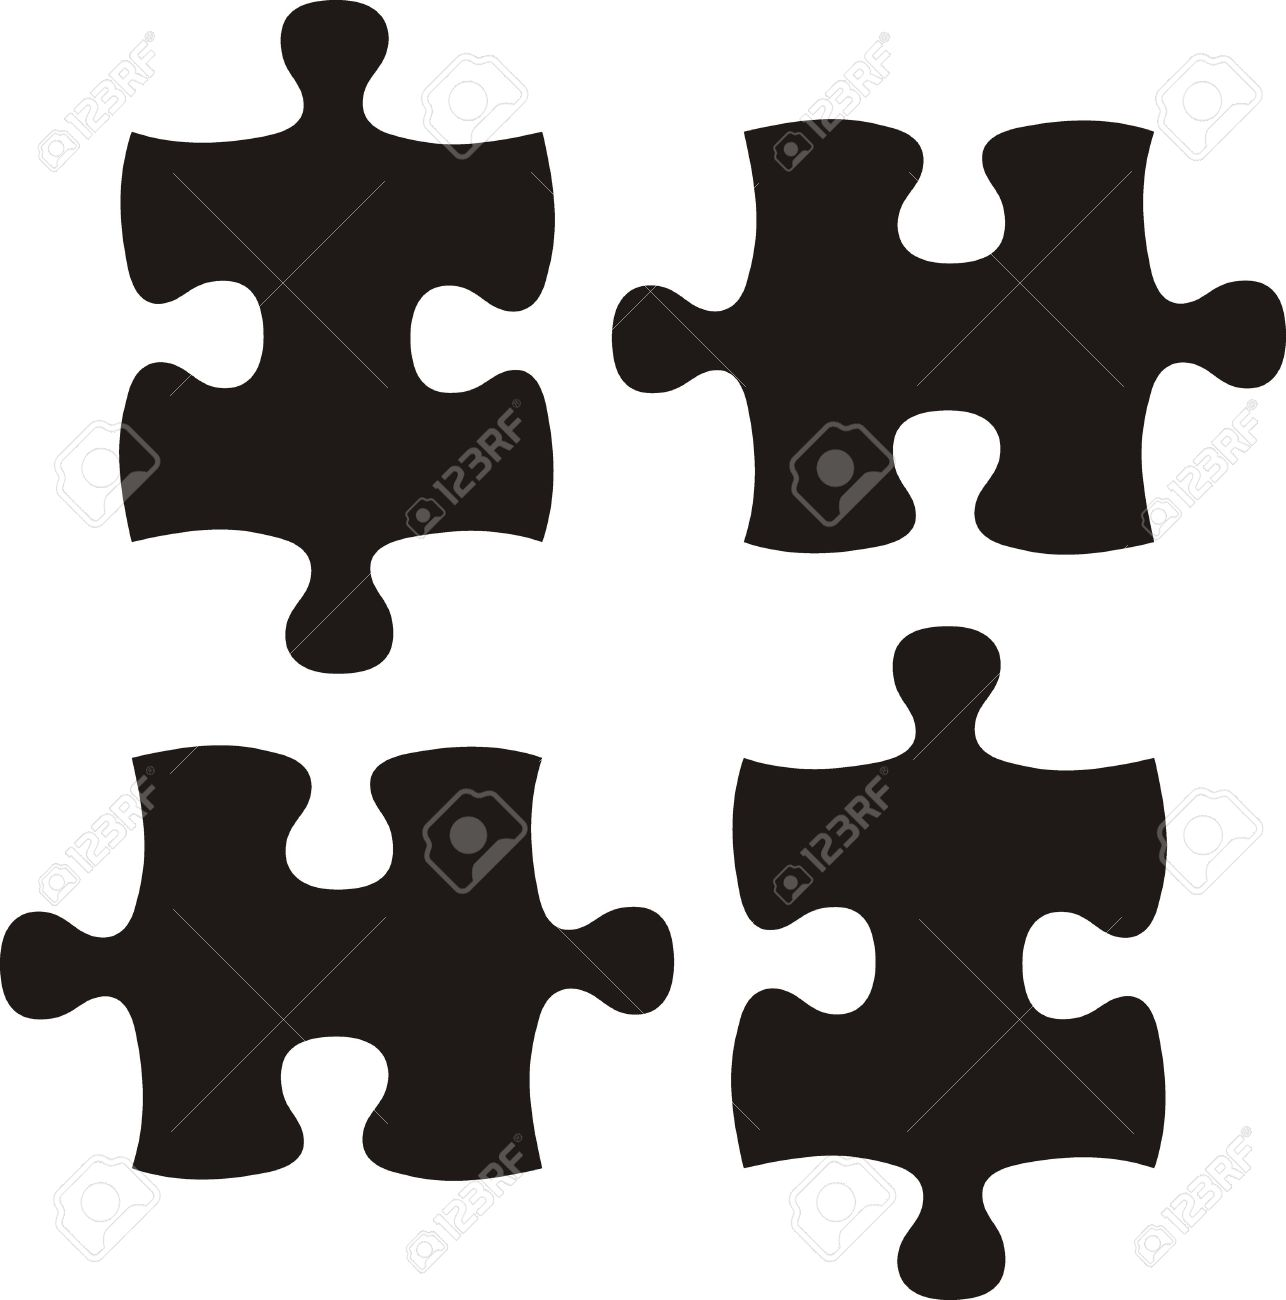 puzzle pieces vector file very easy to edit individual objects rh 123rf com puzzle pieces vector file puzzle pieces vector free